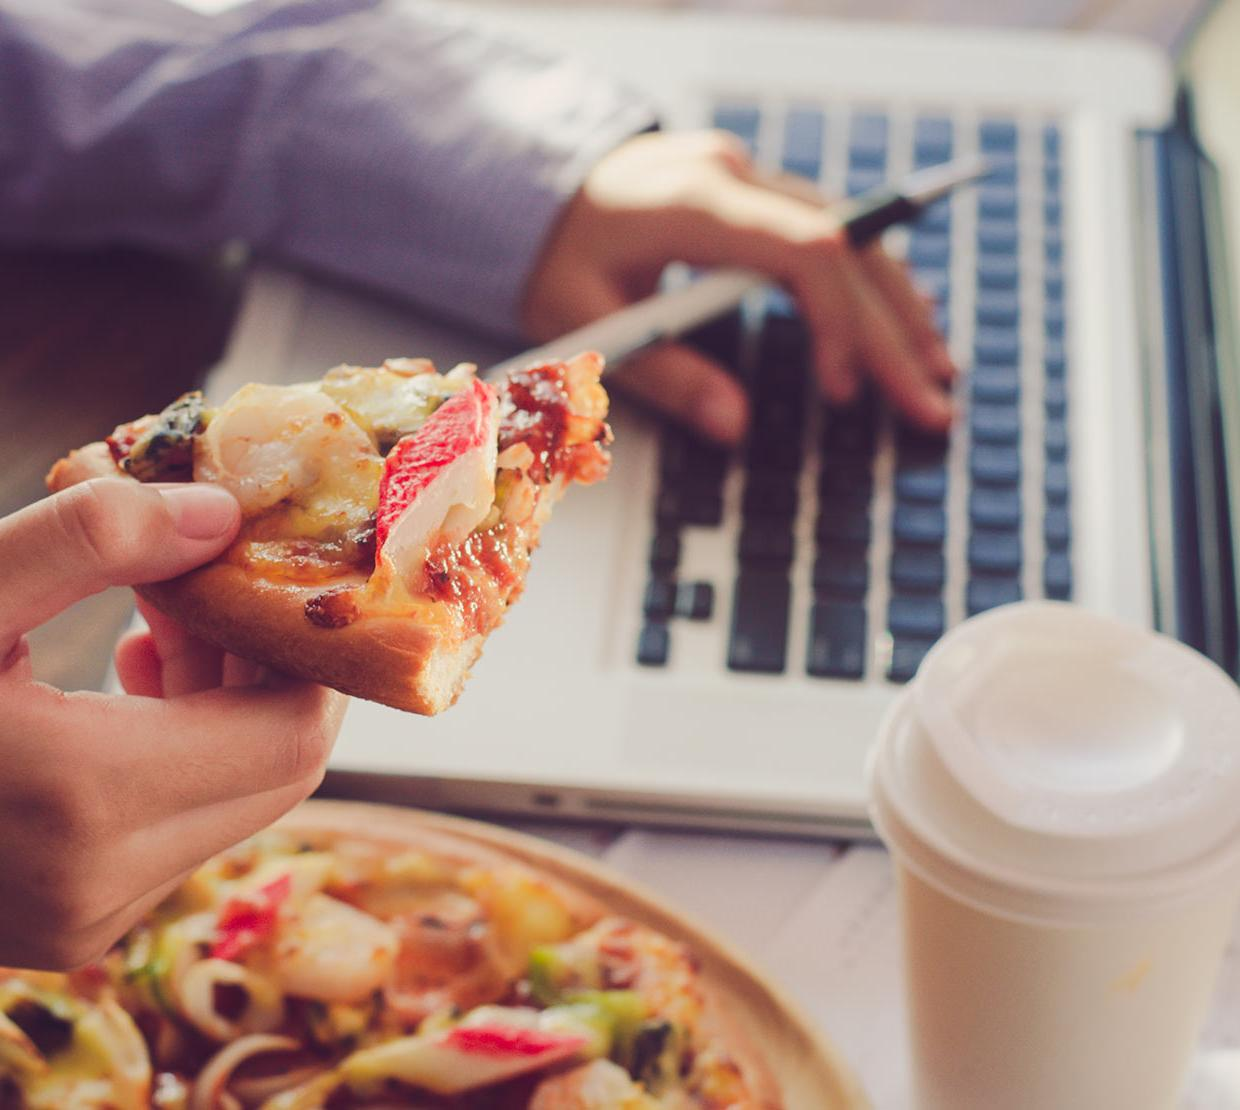 Working on homework with pizza and coffee